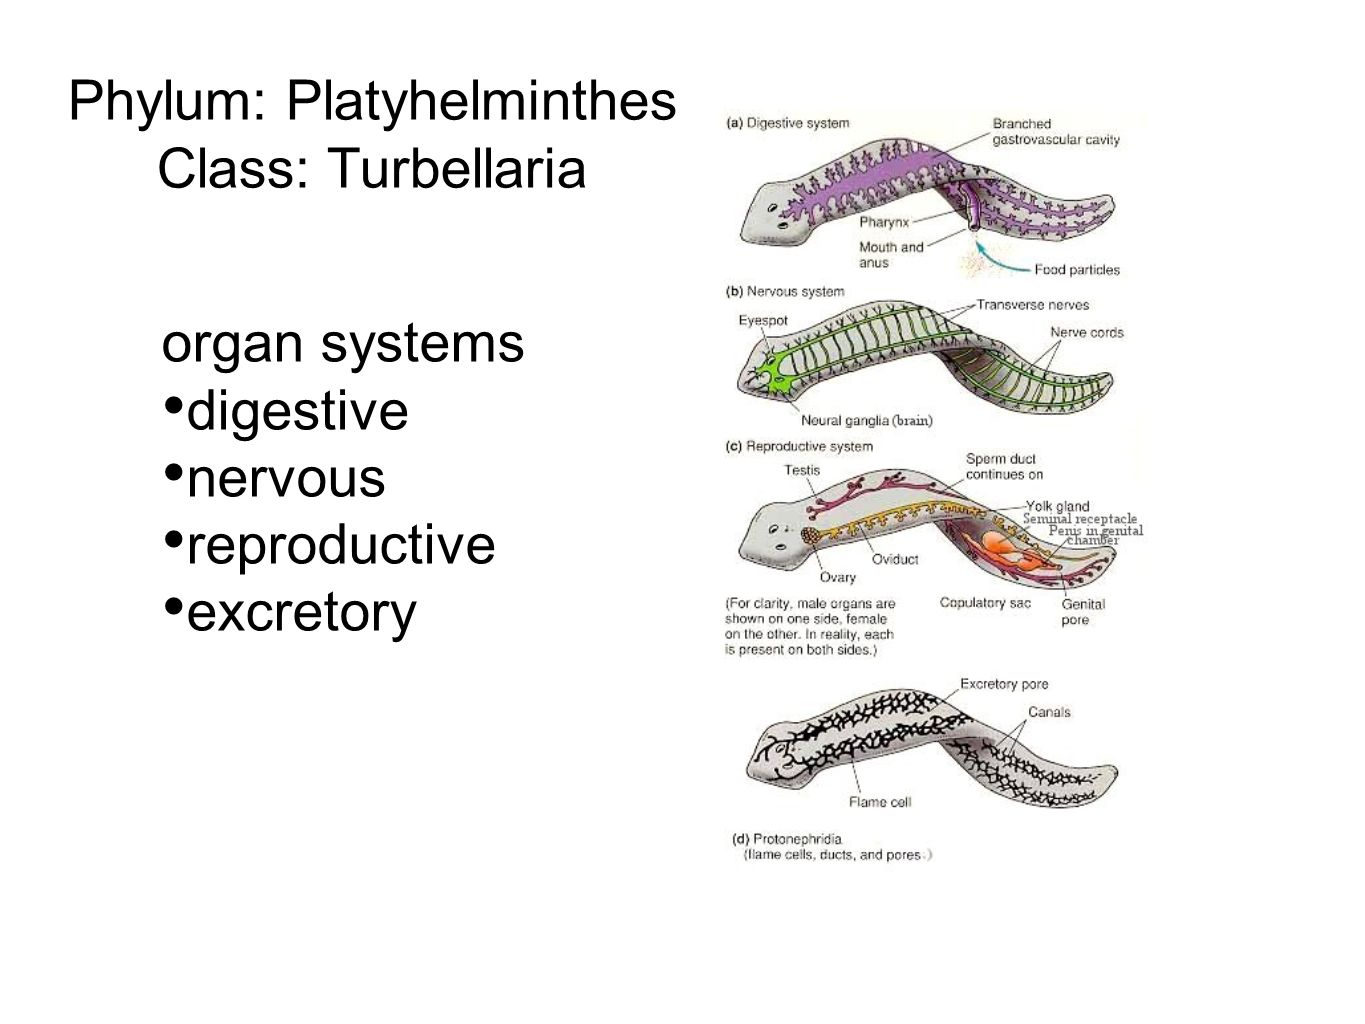 Phylum platyhelminthes ppt video online download phylum platyhelminthes pooptronica Images